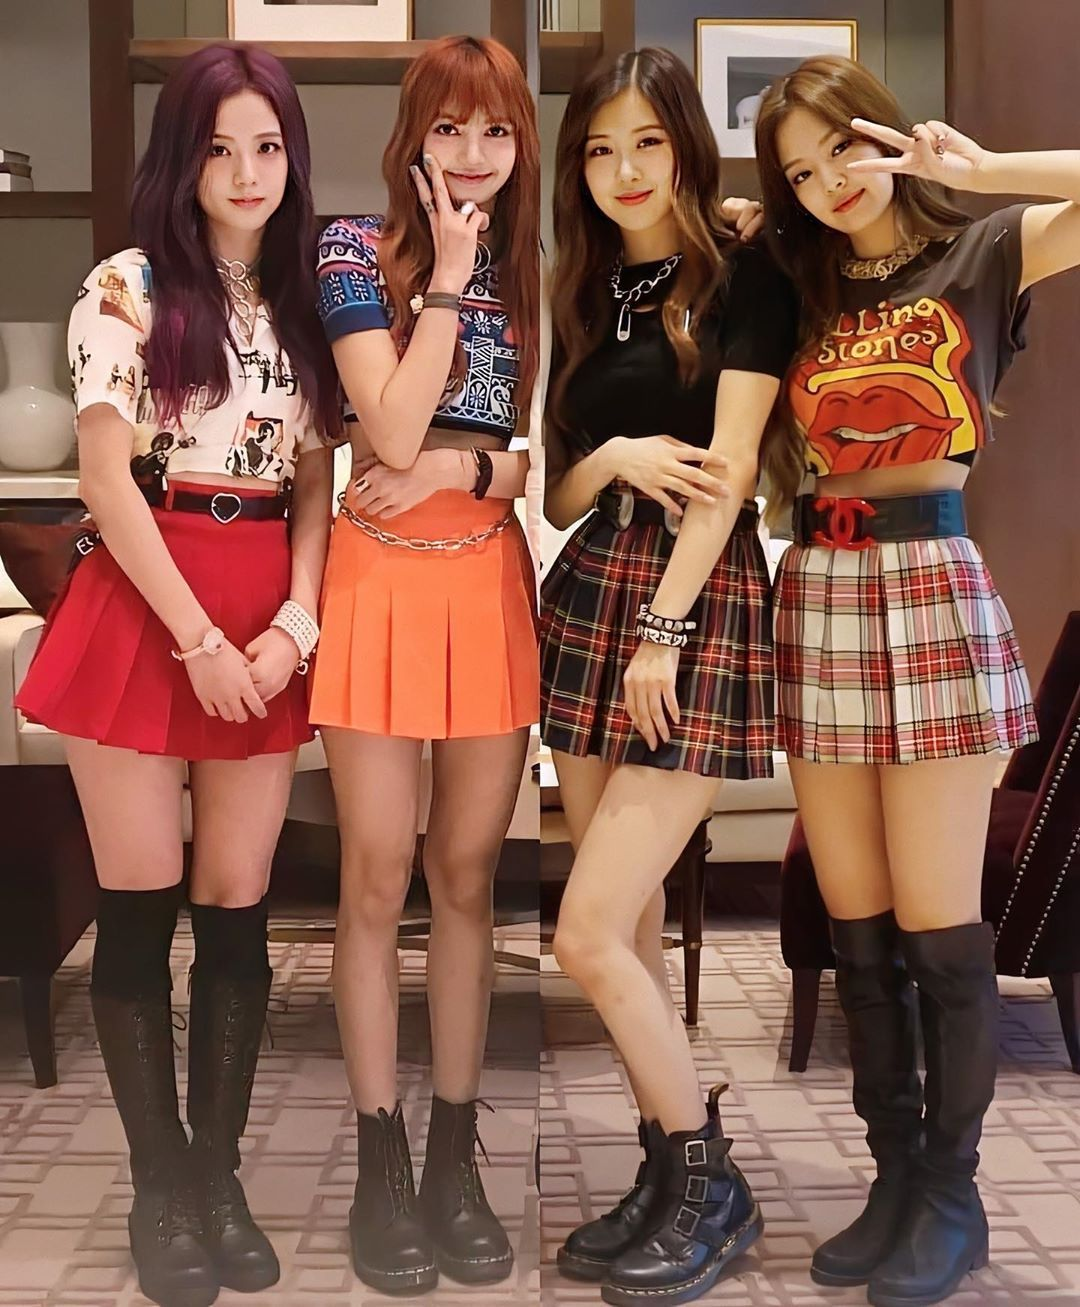 3 346 Curtidas 105 Comentarios Black Pink بلاك بينك Blackpinkco1 No Instagram What Was The First Blackpink Song You Cheer Skirts Fashion Black Pink